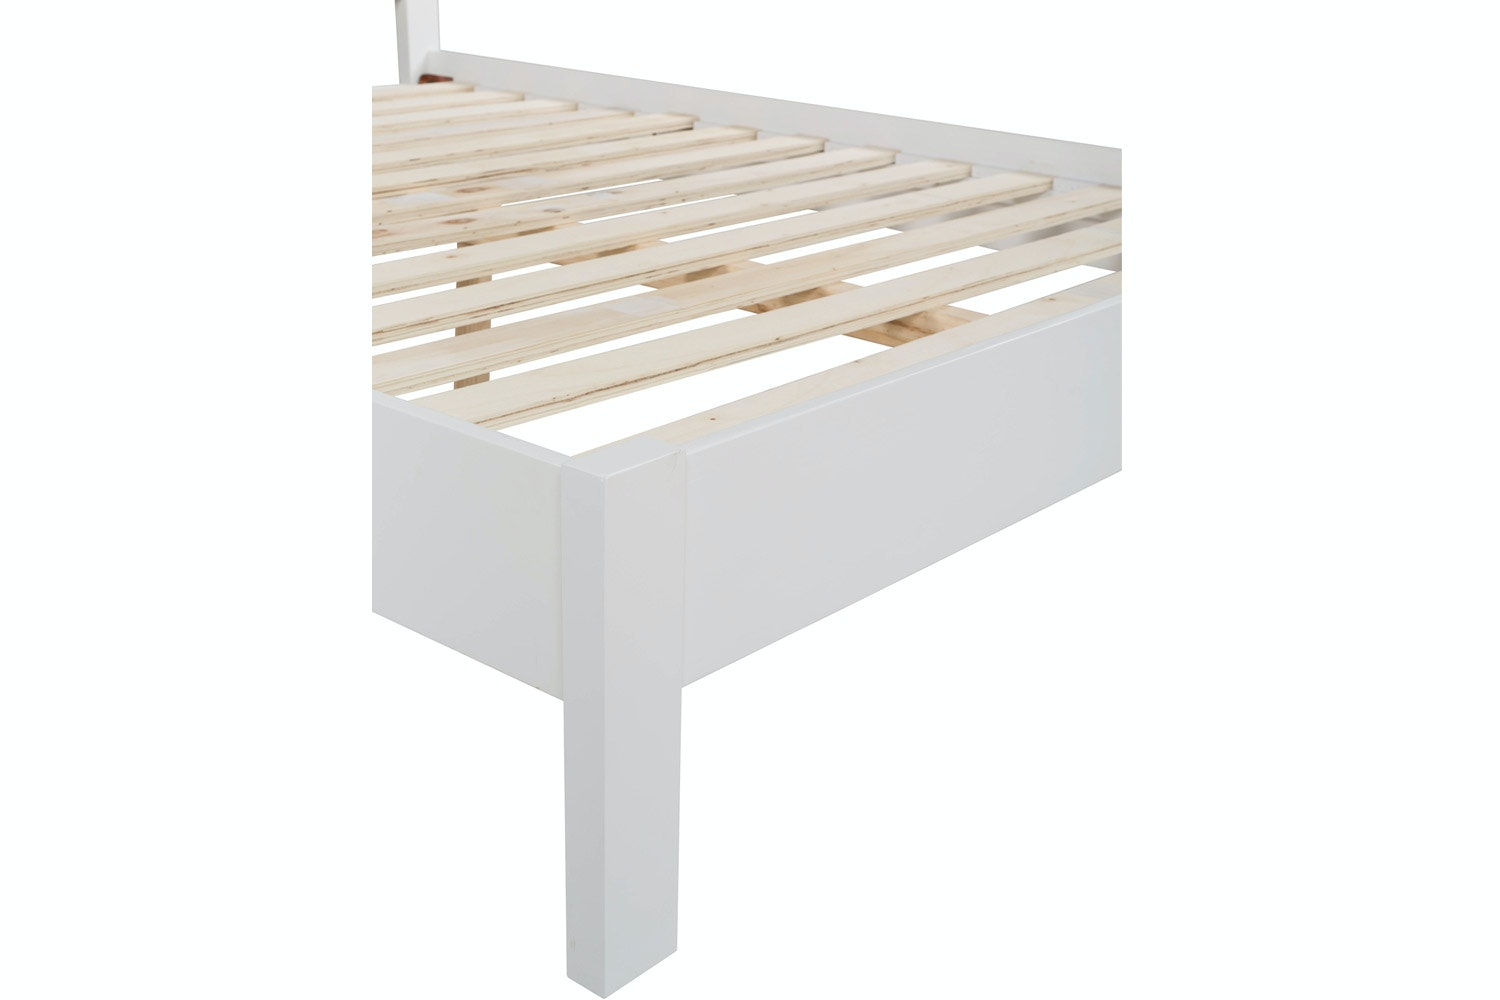 Ascott Double Bed Frame